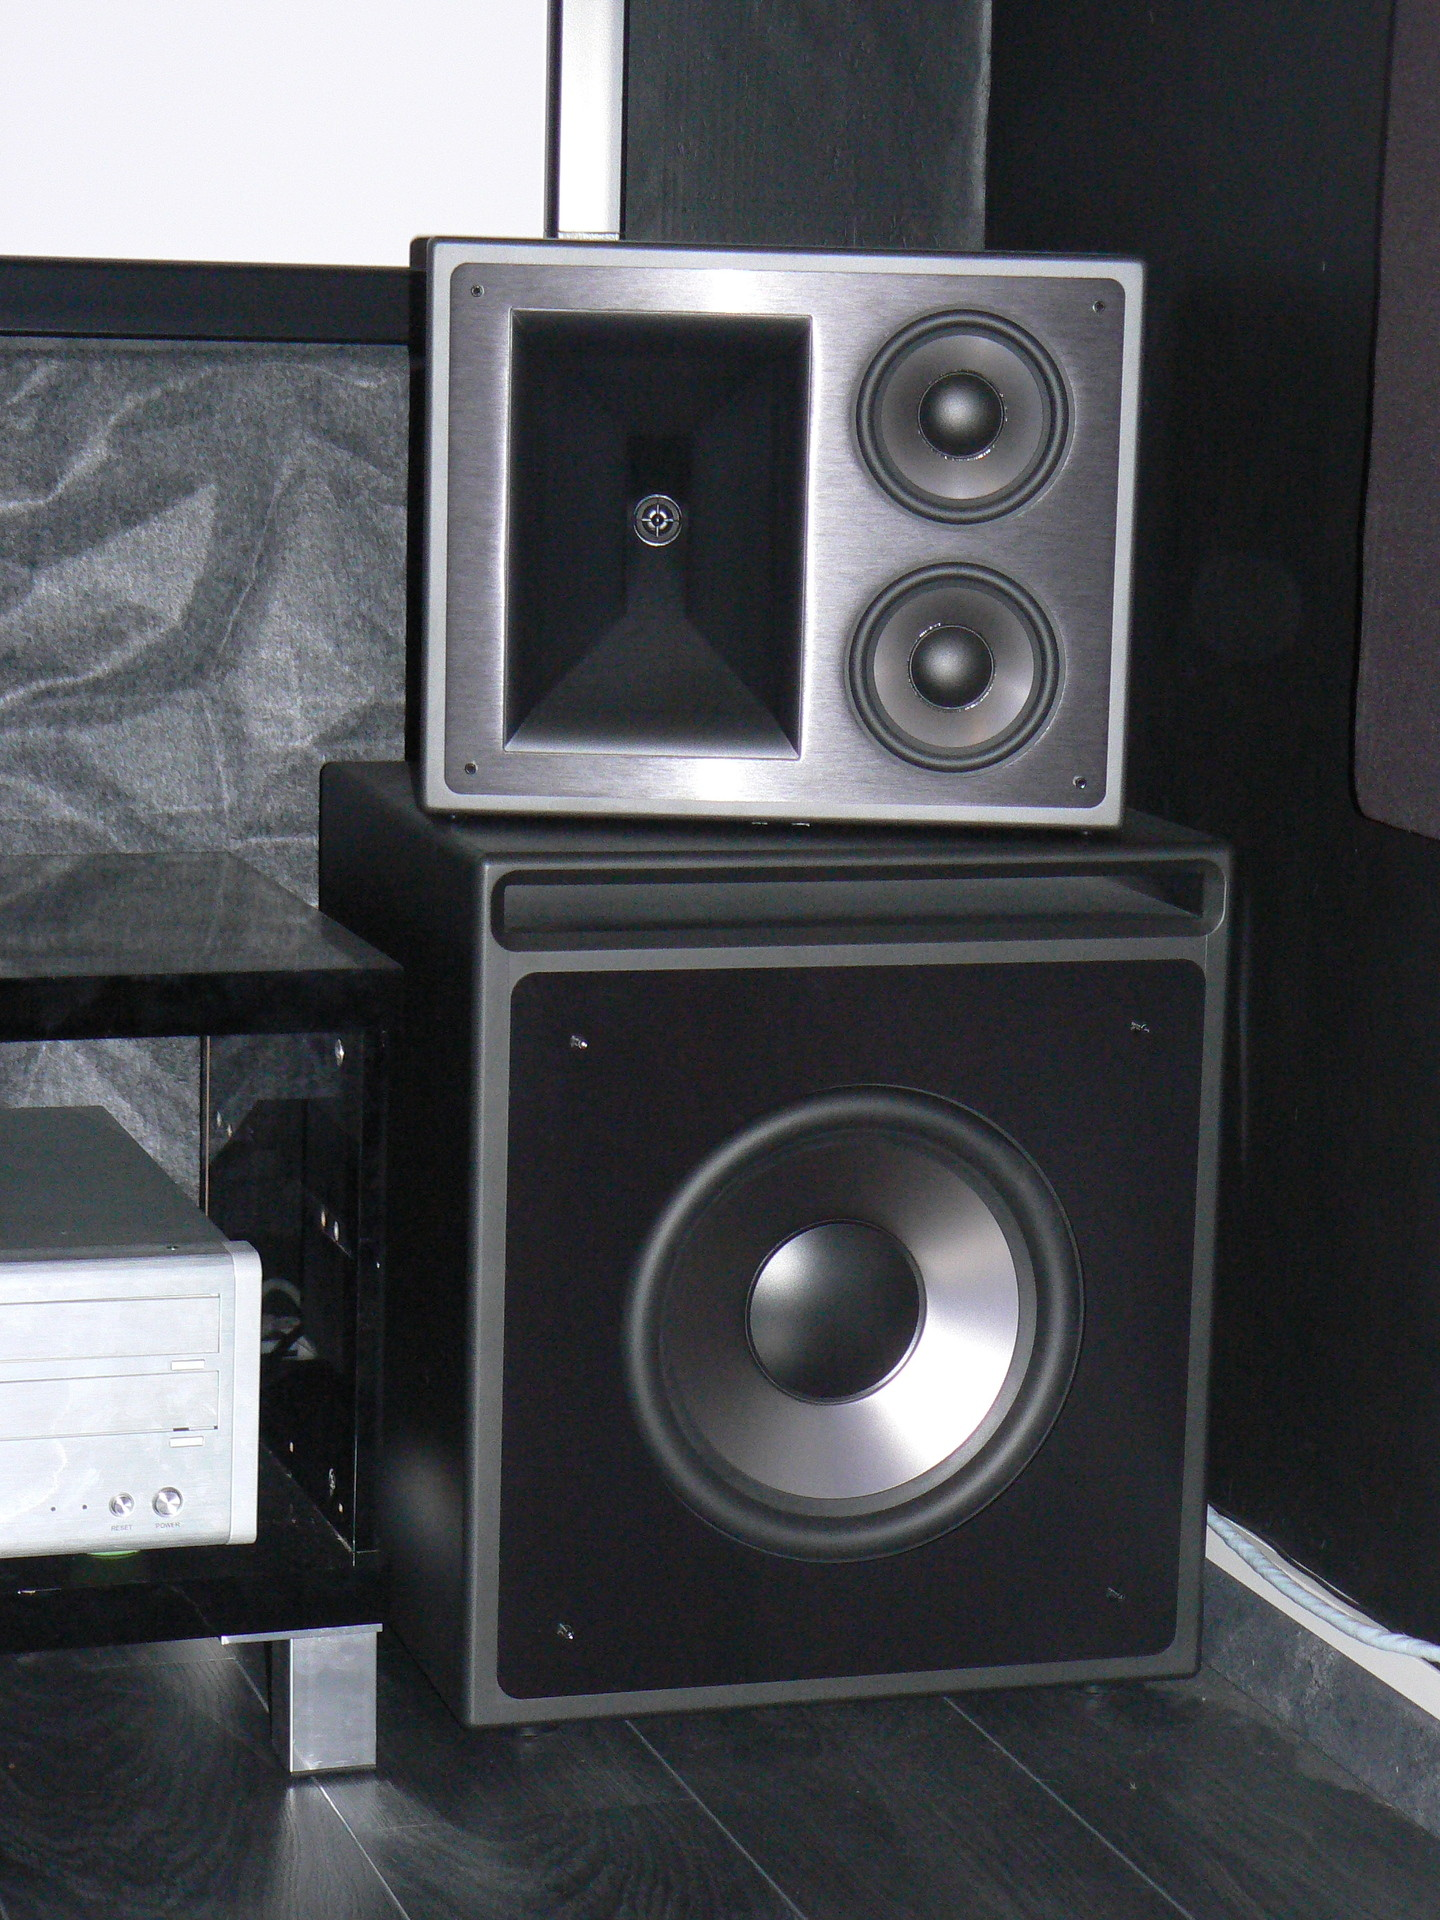 images of klipsch kw 120 thx subwoofer. Black Bedroom Furniture Sets. Home Design Ideas